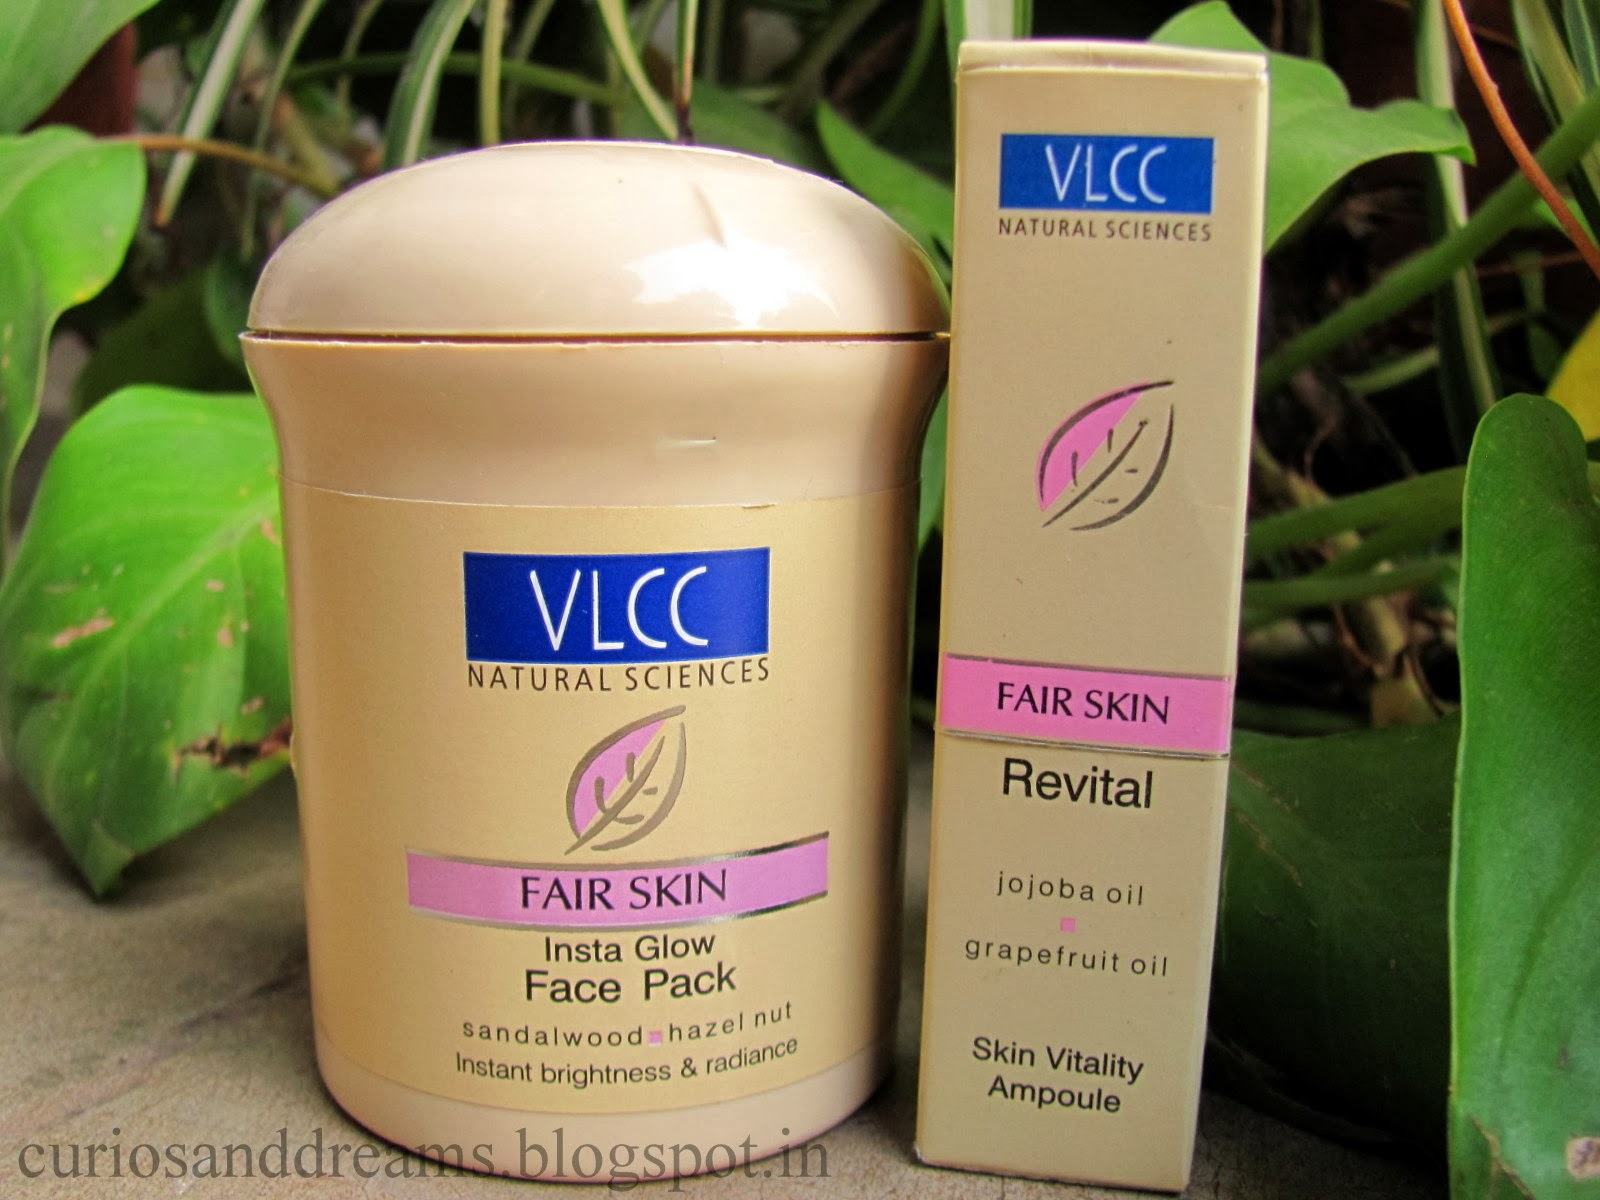 VLCC Insta Glow Face Pack review